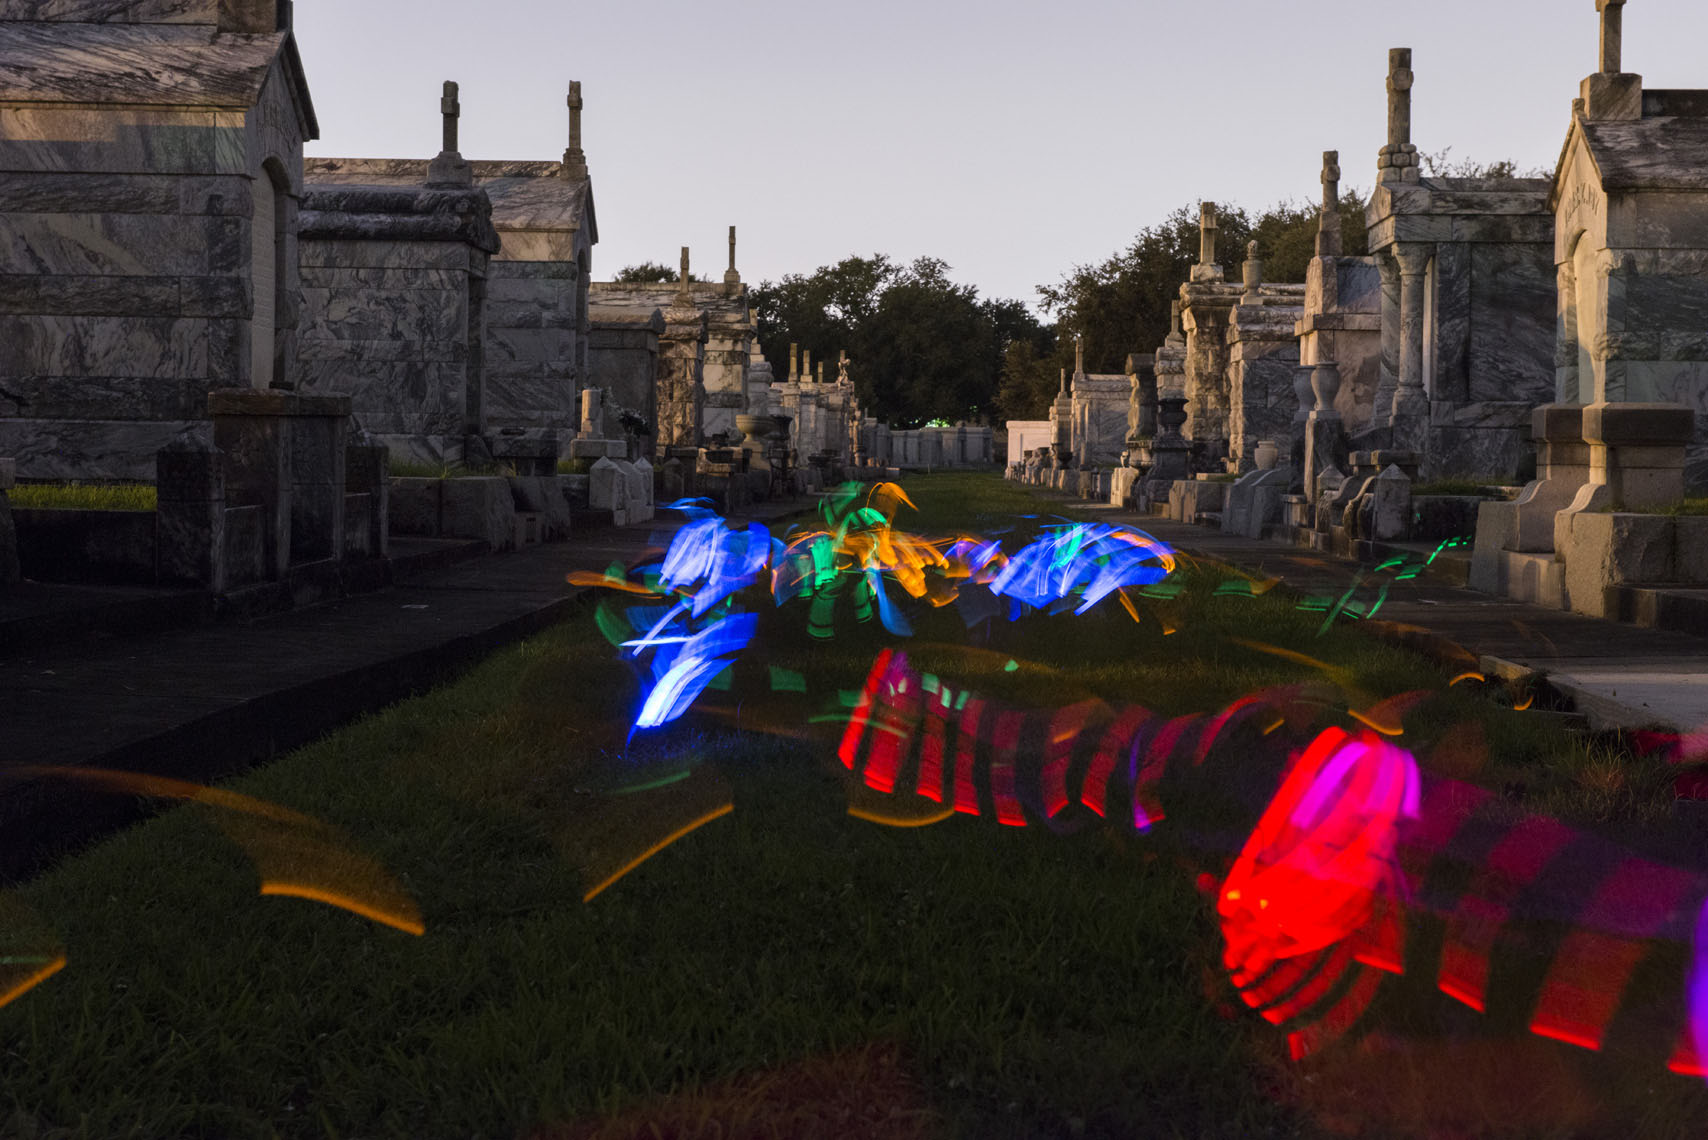 happy-dogs-playing-in-a-New-Orleans-cemetery-at-night